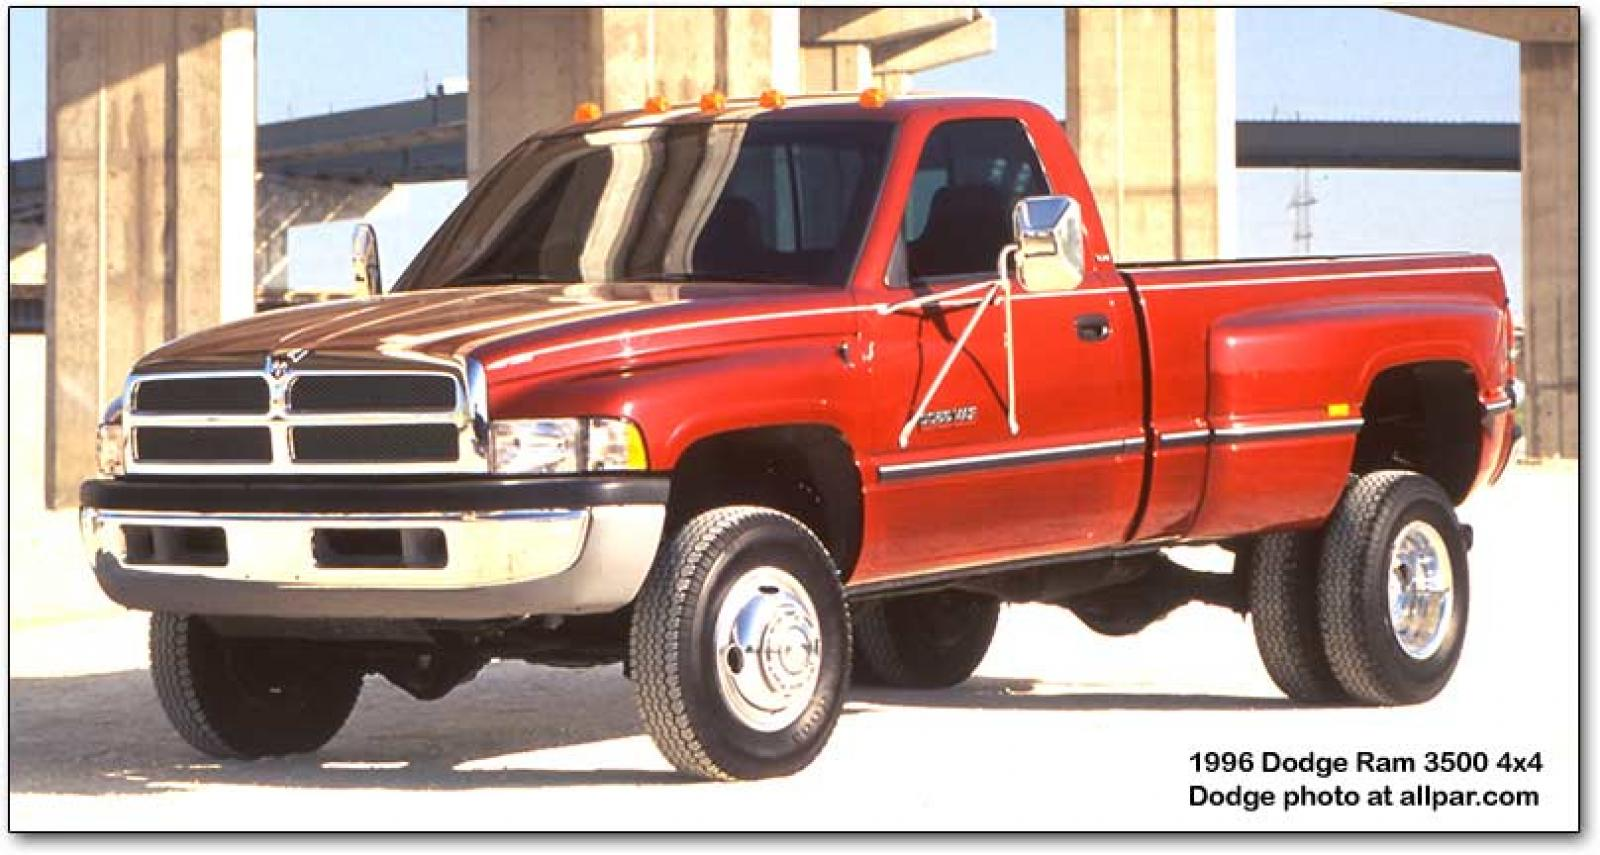 1994 Dodge Ram Pickup 1500 Information And Photos Zomb